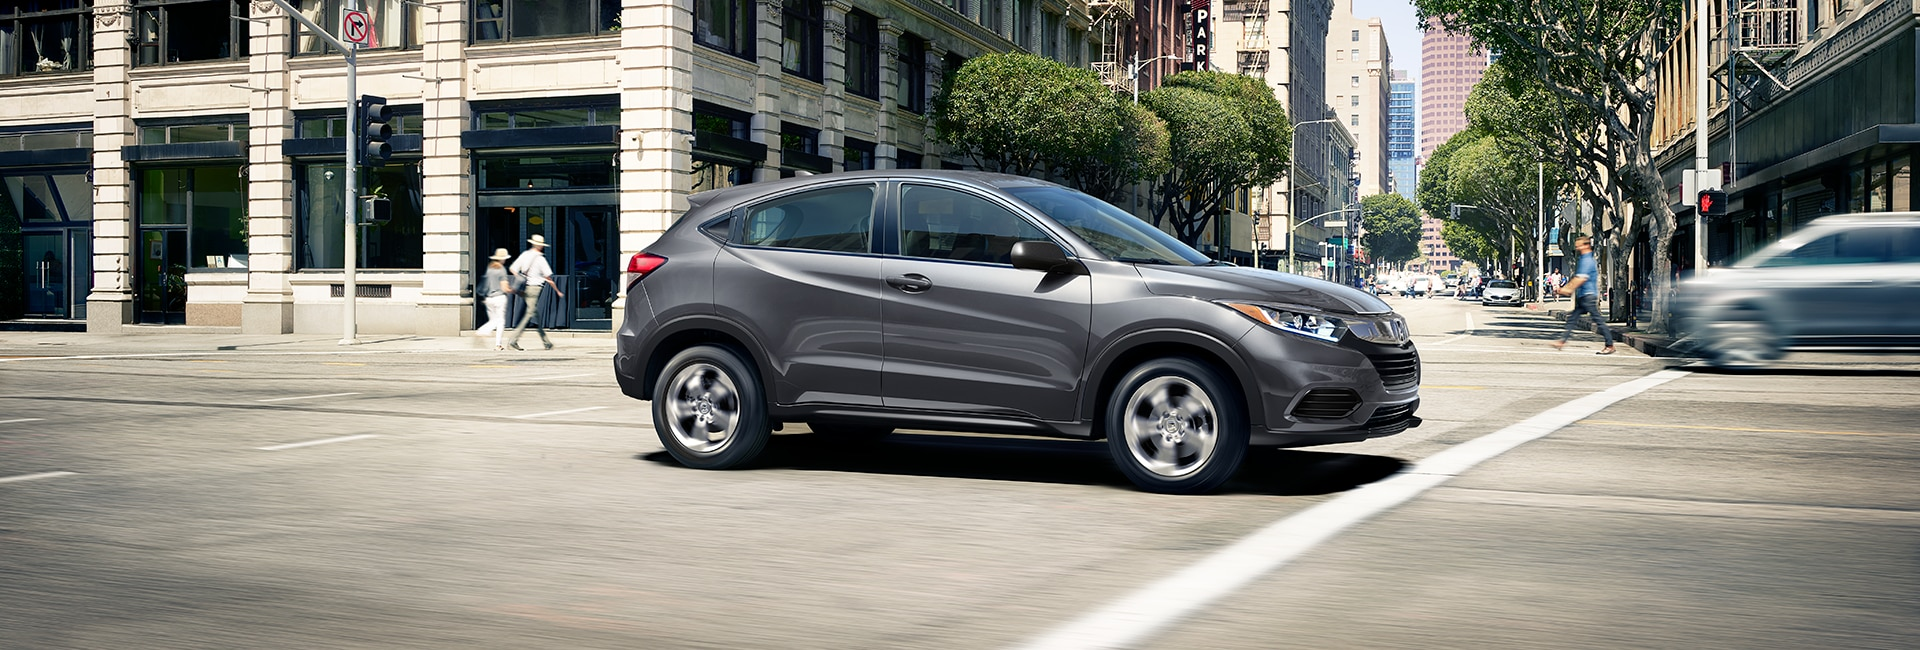 New 2019 Honda HR-V Exterior